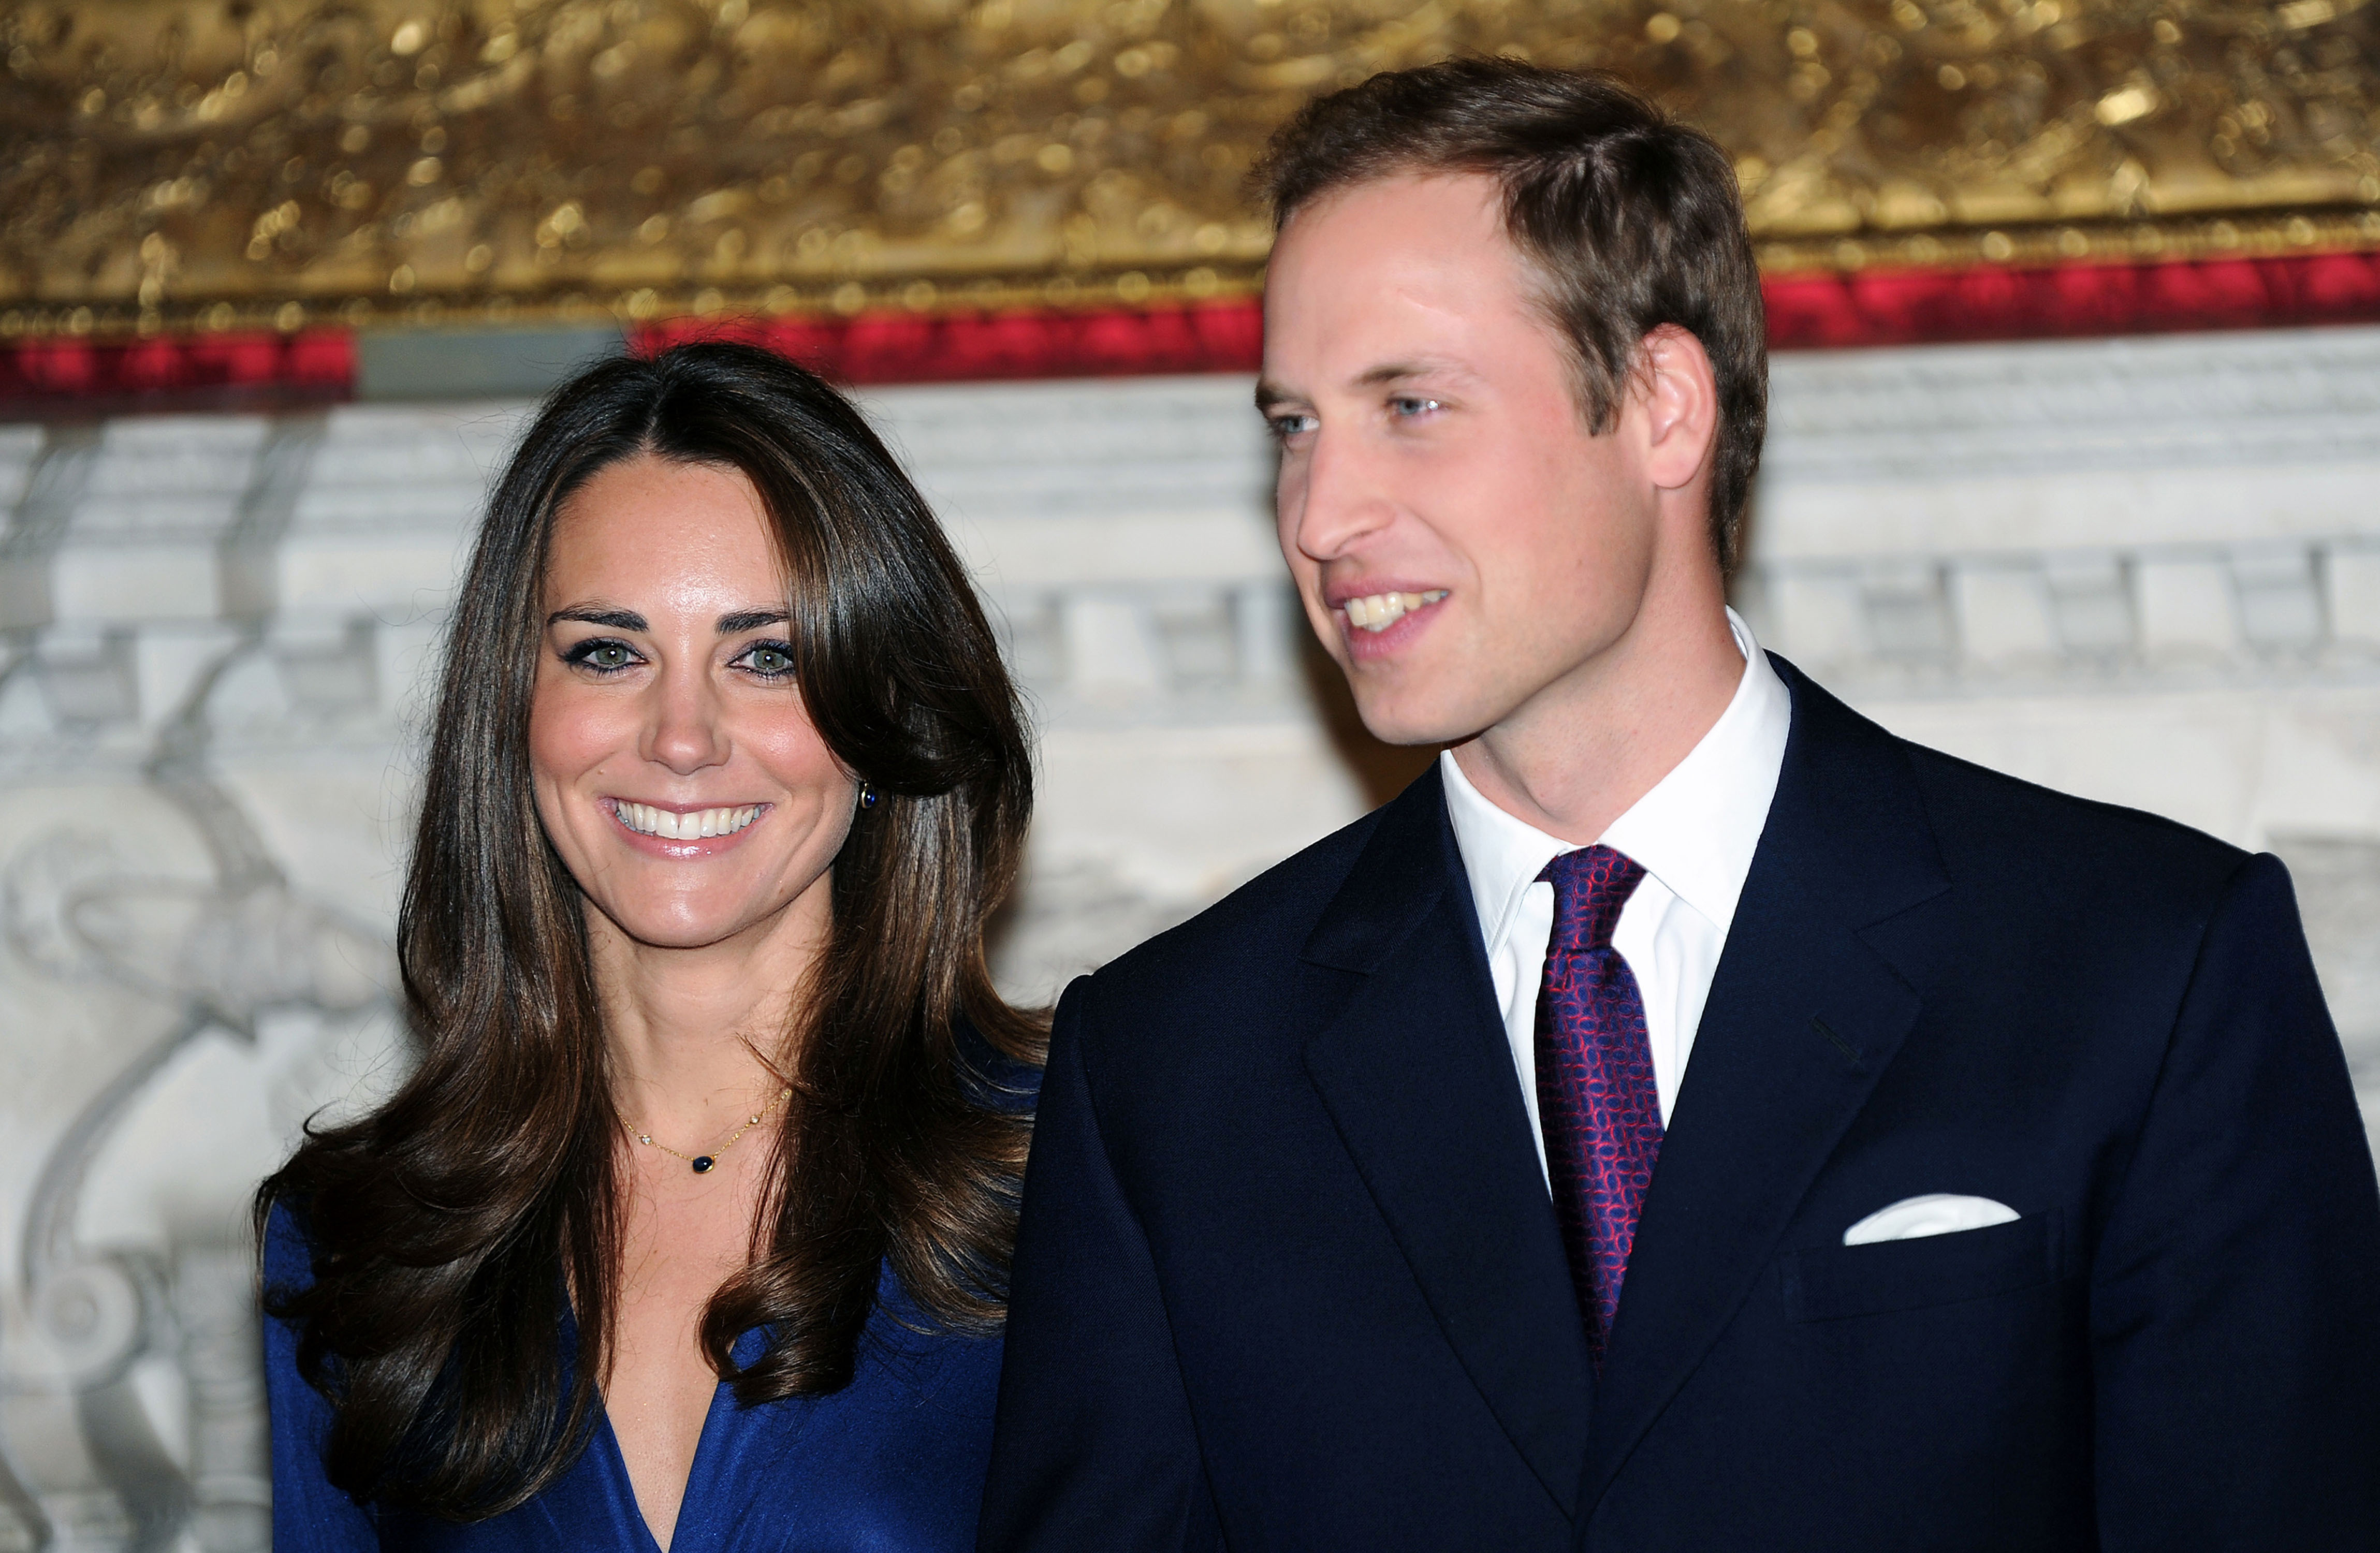 How To Do Your Own Wedding Makeup Like Kate Middleton